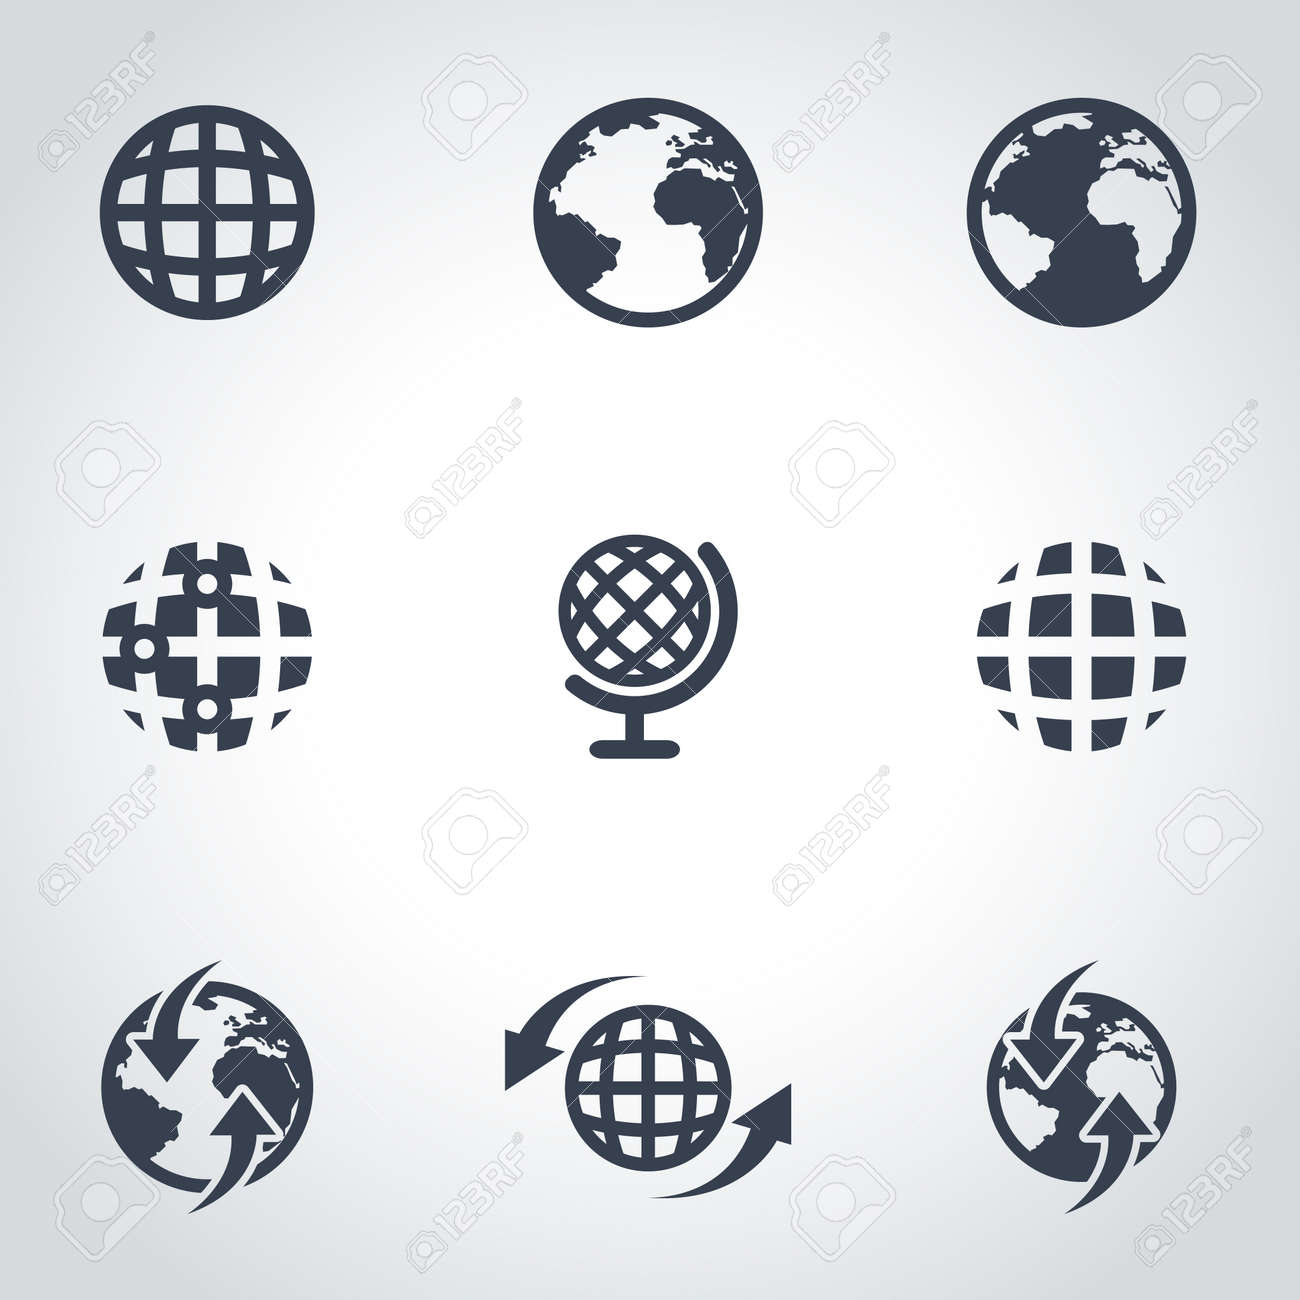 Vector black world map icon set world map icon object world vector vector black world map icon set world map icon object world map icon picture world map icon image world map icon graphic world map icon jpg gumiabroncs Images